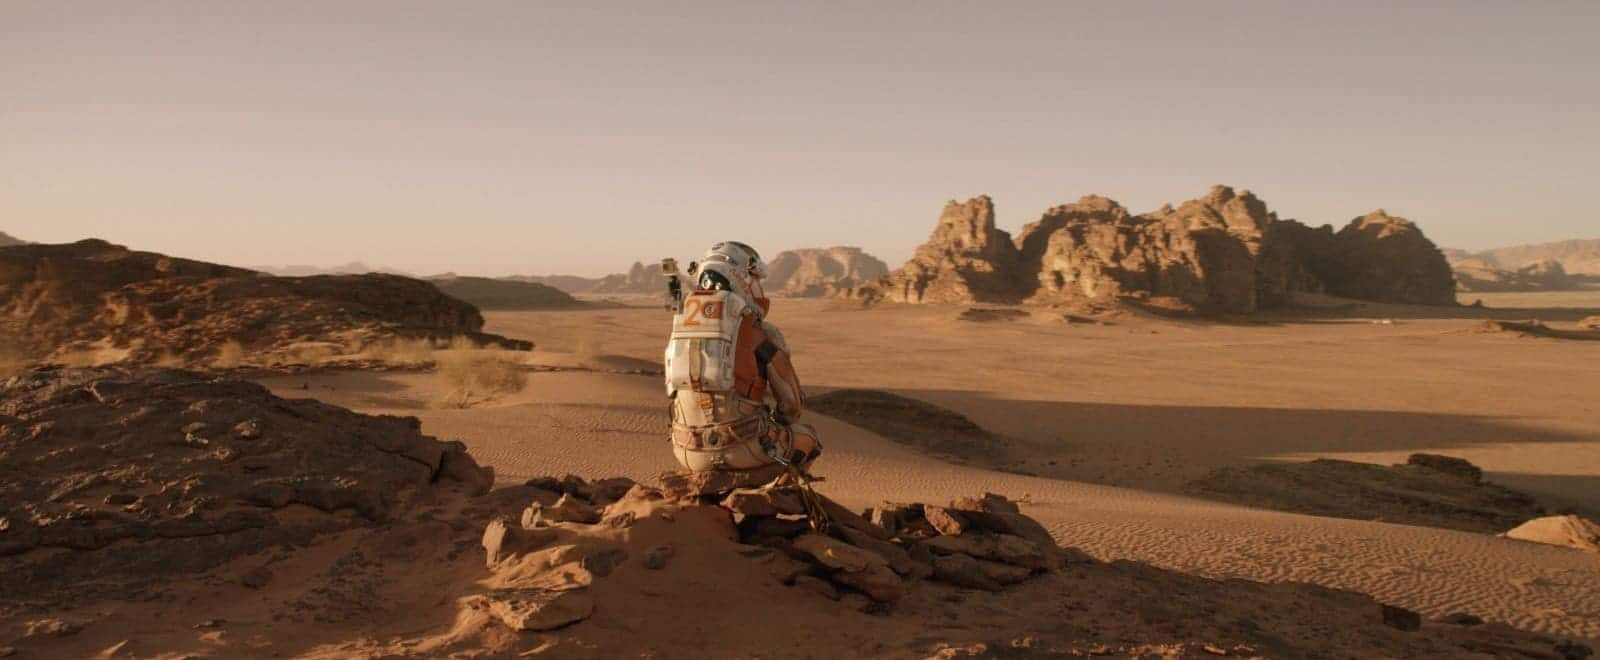 Camera Shot Guide - Wide Shot - The Martian - StudioBinder